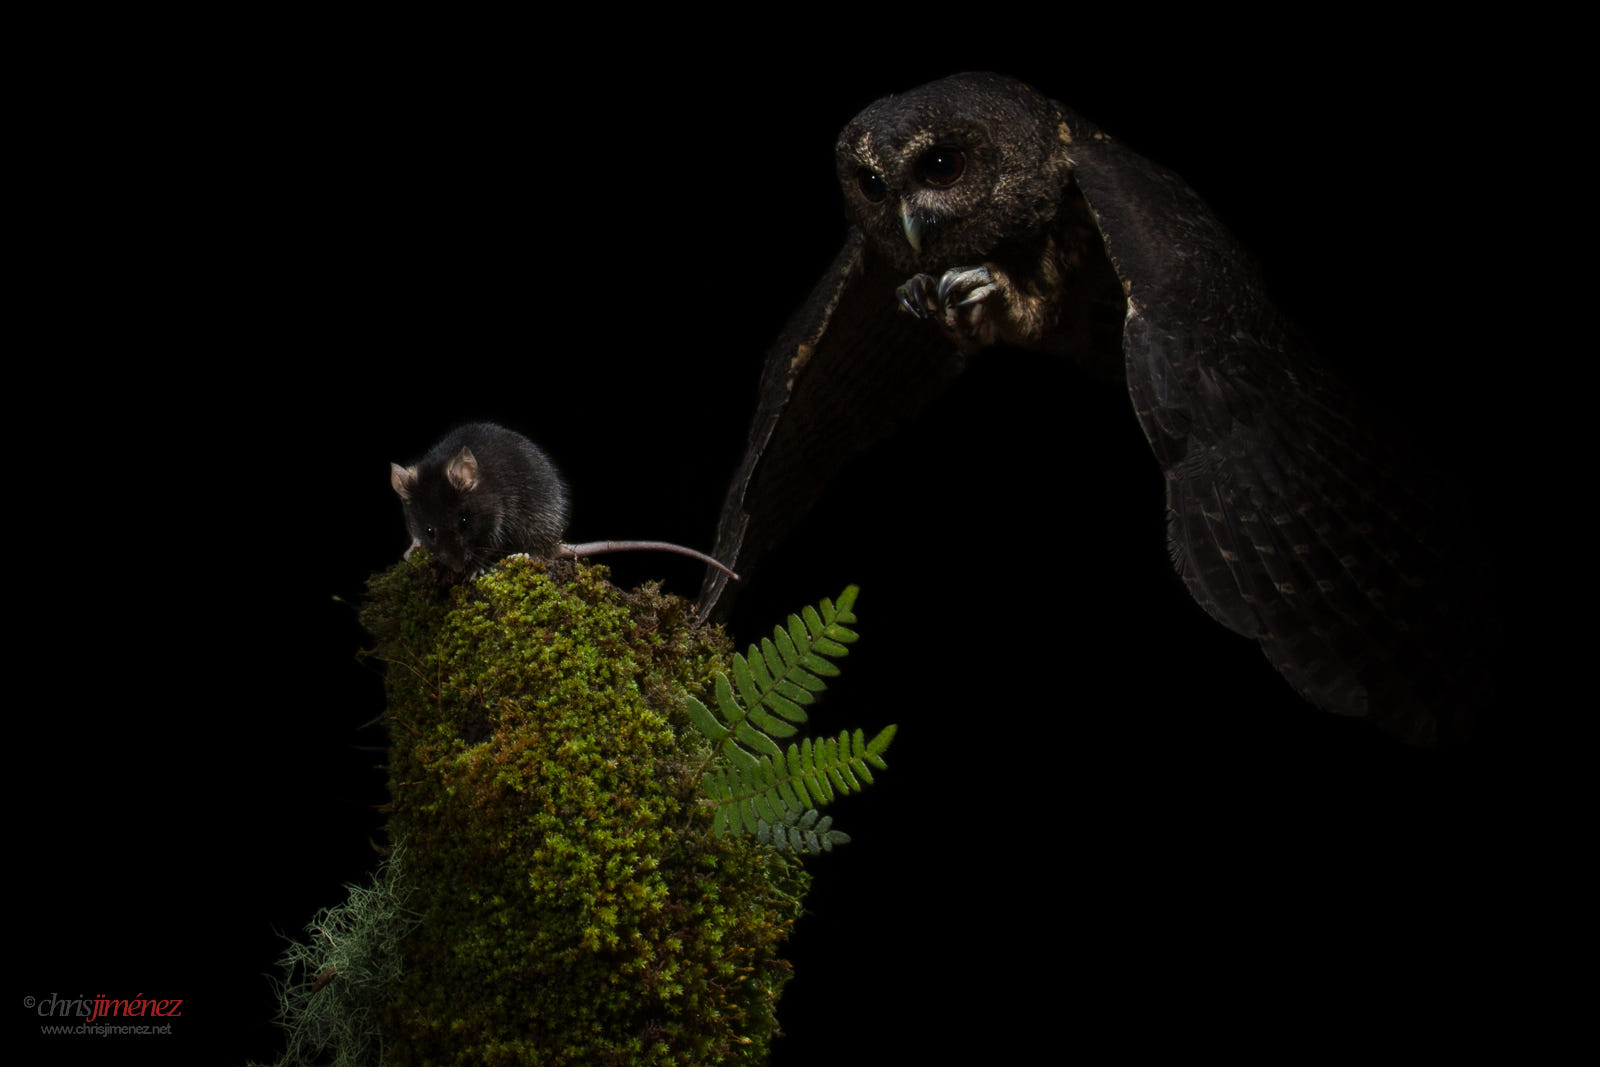 owl catching the mouse - photo #5